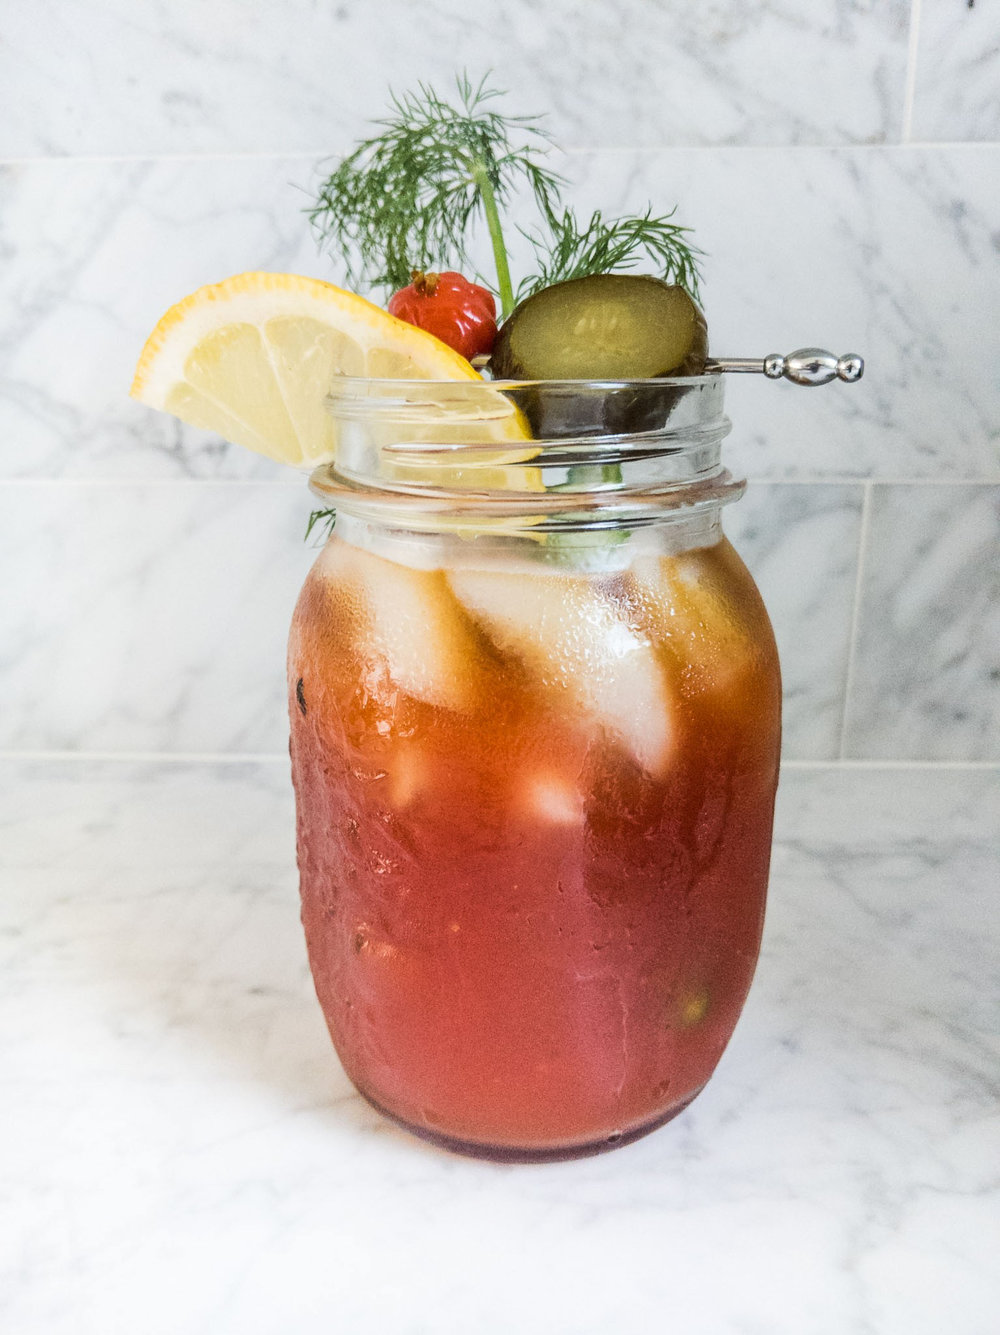 CHIPOTLE BLOODY MARY - 2.5 oz of tomato juice1/2 oz of bread & butter pickle juice1/4 oz Frankie V Habanero Hot Sauce (or other favorite hot sauce)2 dashes of Worcestershire sauce2 oz of Dr. Zzyzx Chipotle VodkaSqueeze of lemon